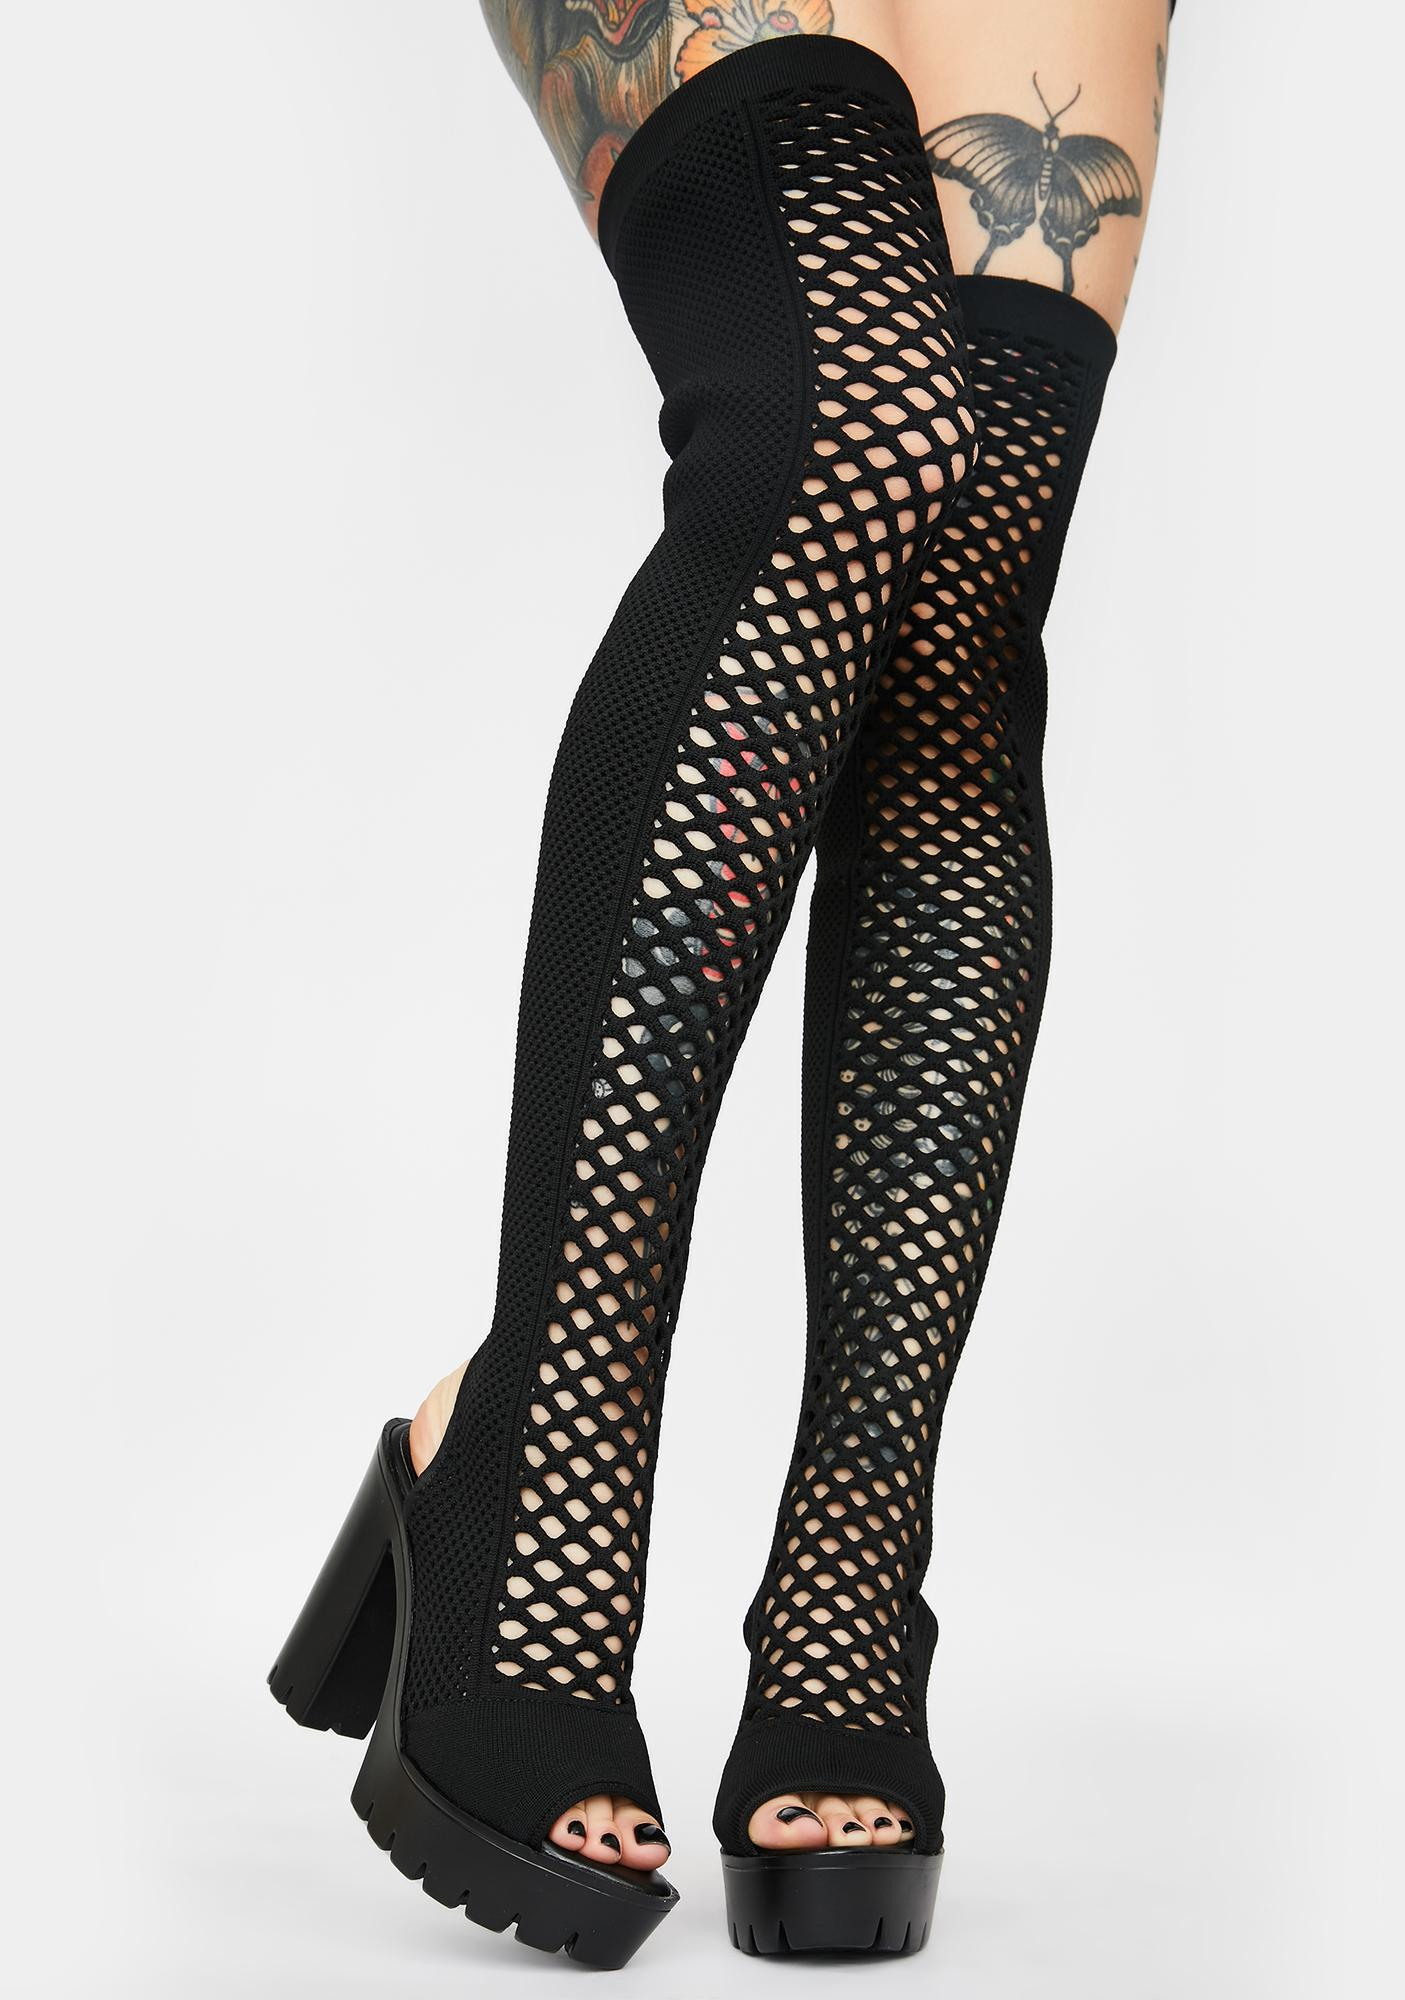 Straight No Chaser Fishnet Boots